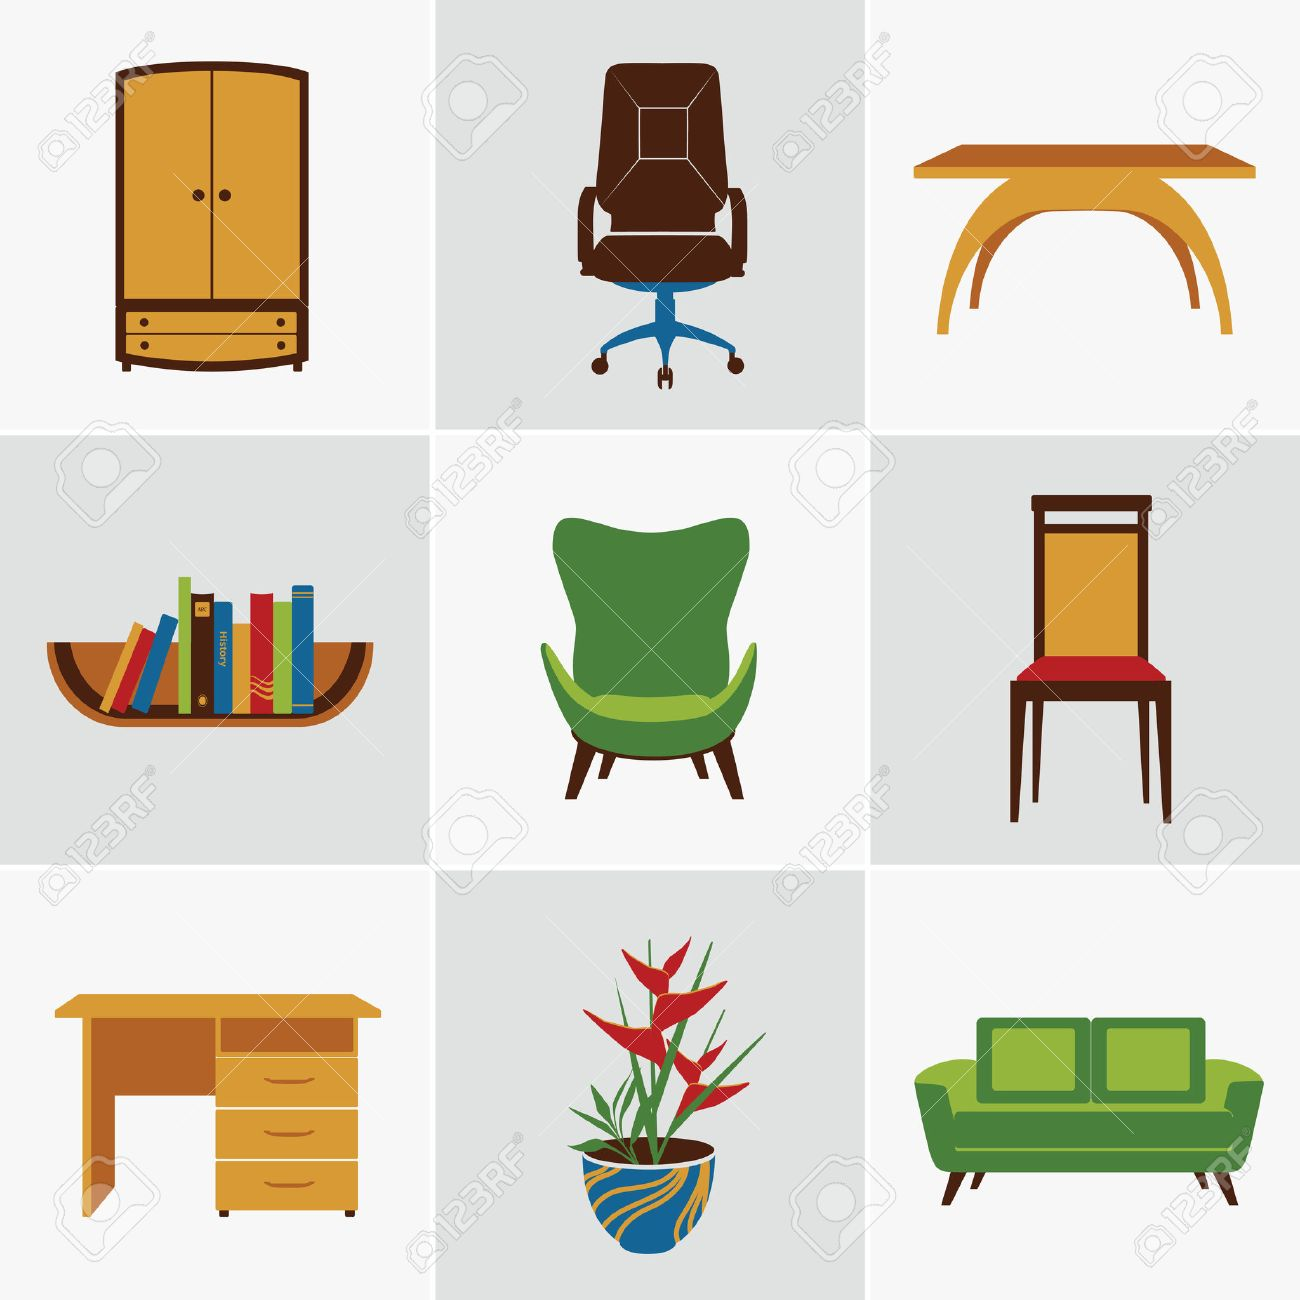 flat furniture. Furniture Flat Decorative Icons Set Of Chair Bookshelf Table Isolated Vector Illustration Stock - 28494203